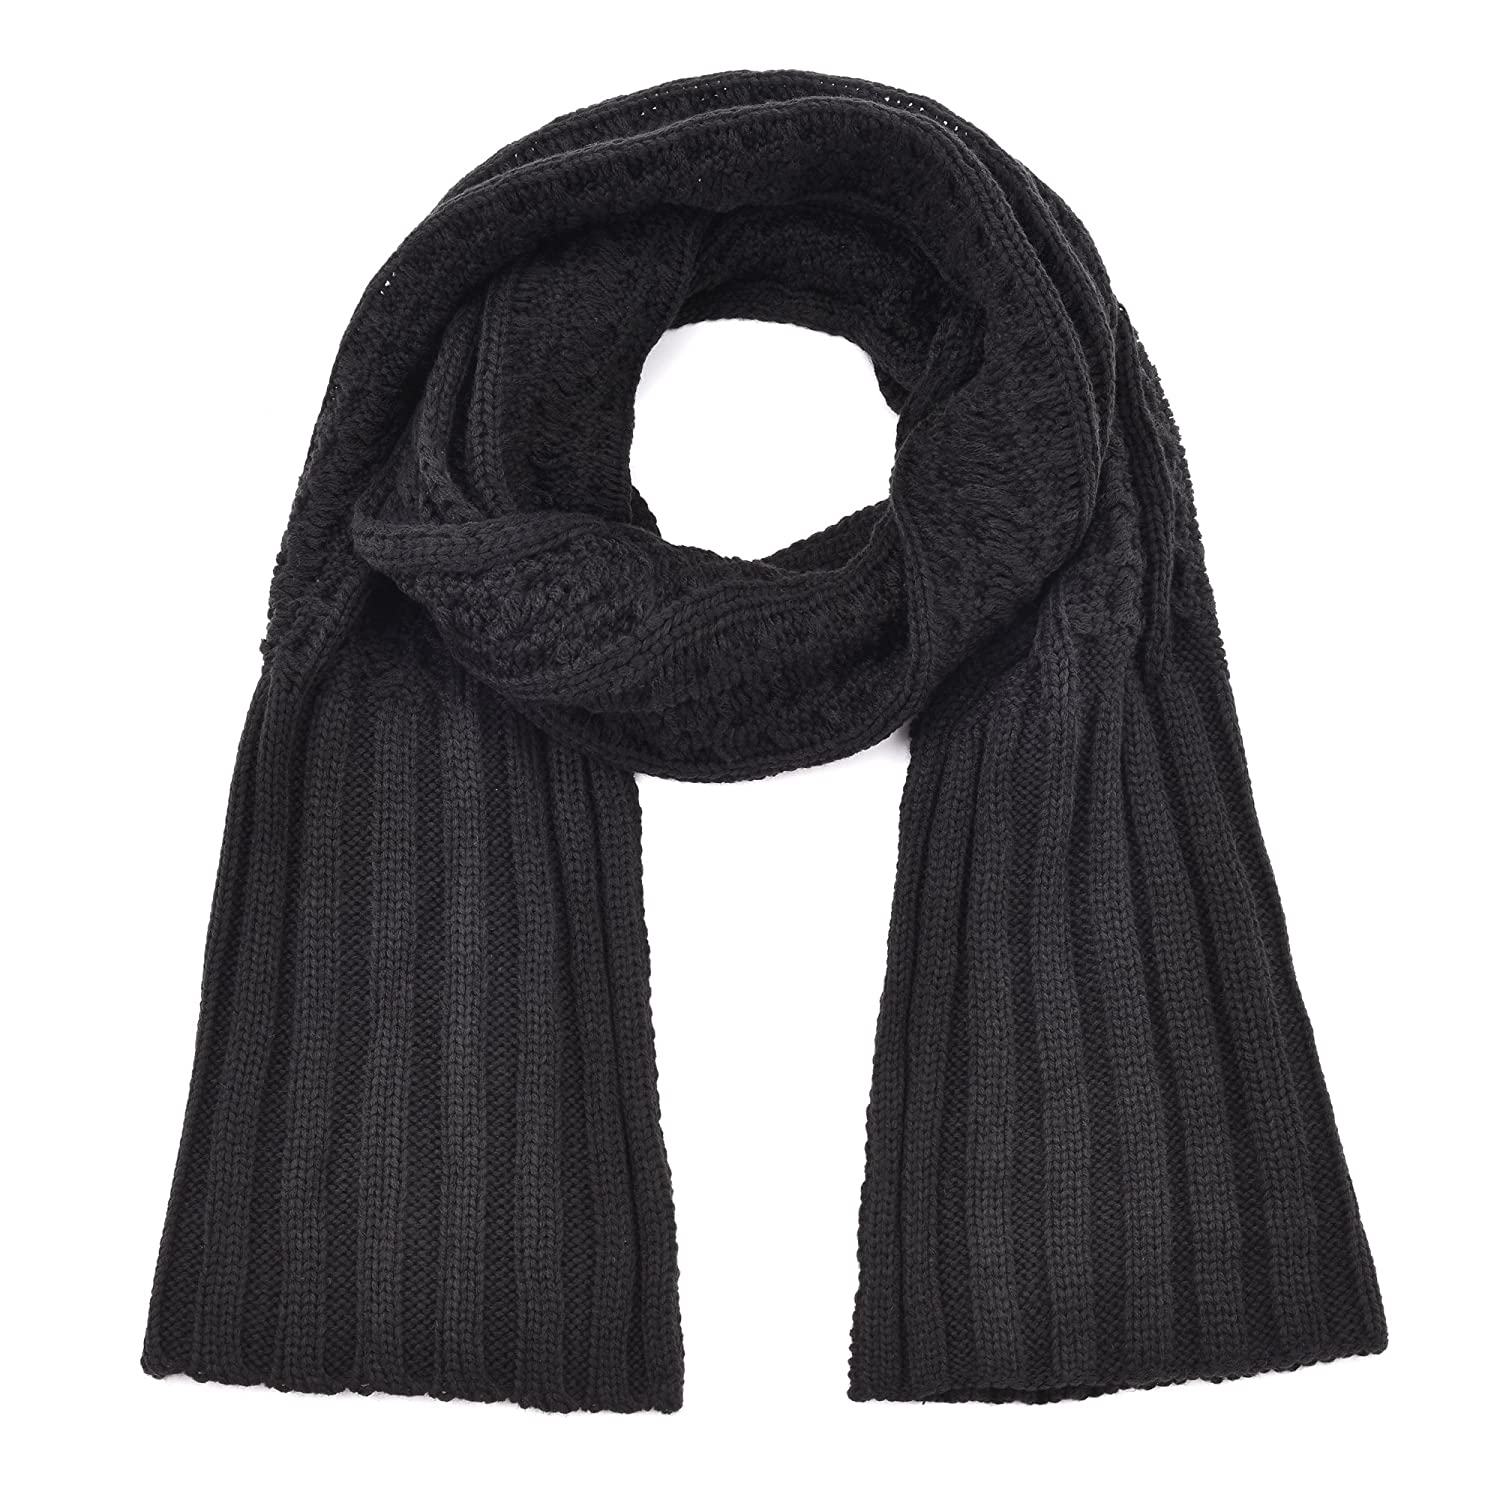 RiscaWin Winter Fashion Women Thick Knitted Shawl Wrap Chunky Warm Long Scarf (Black)